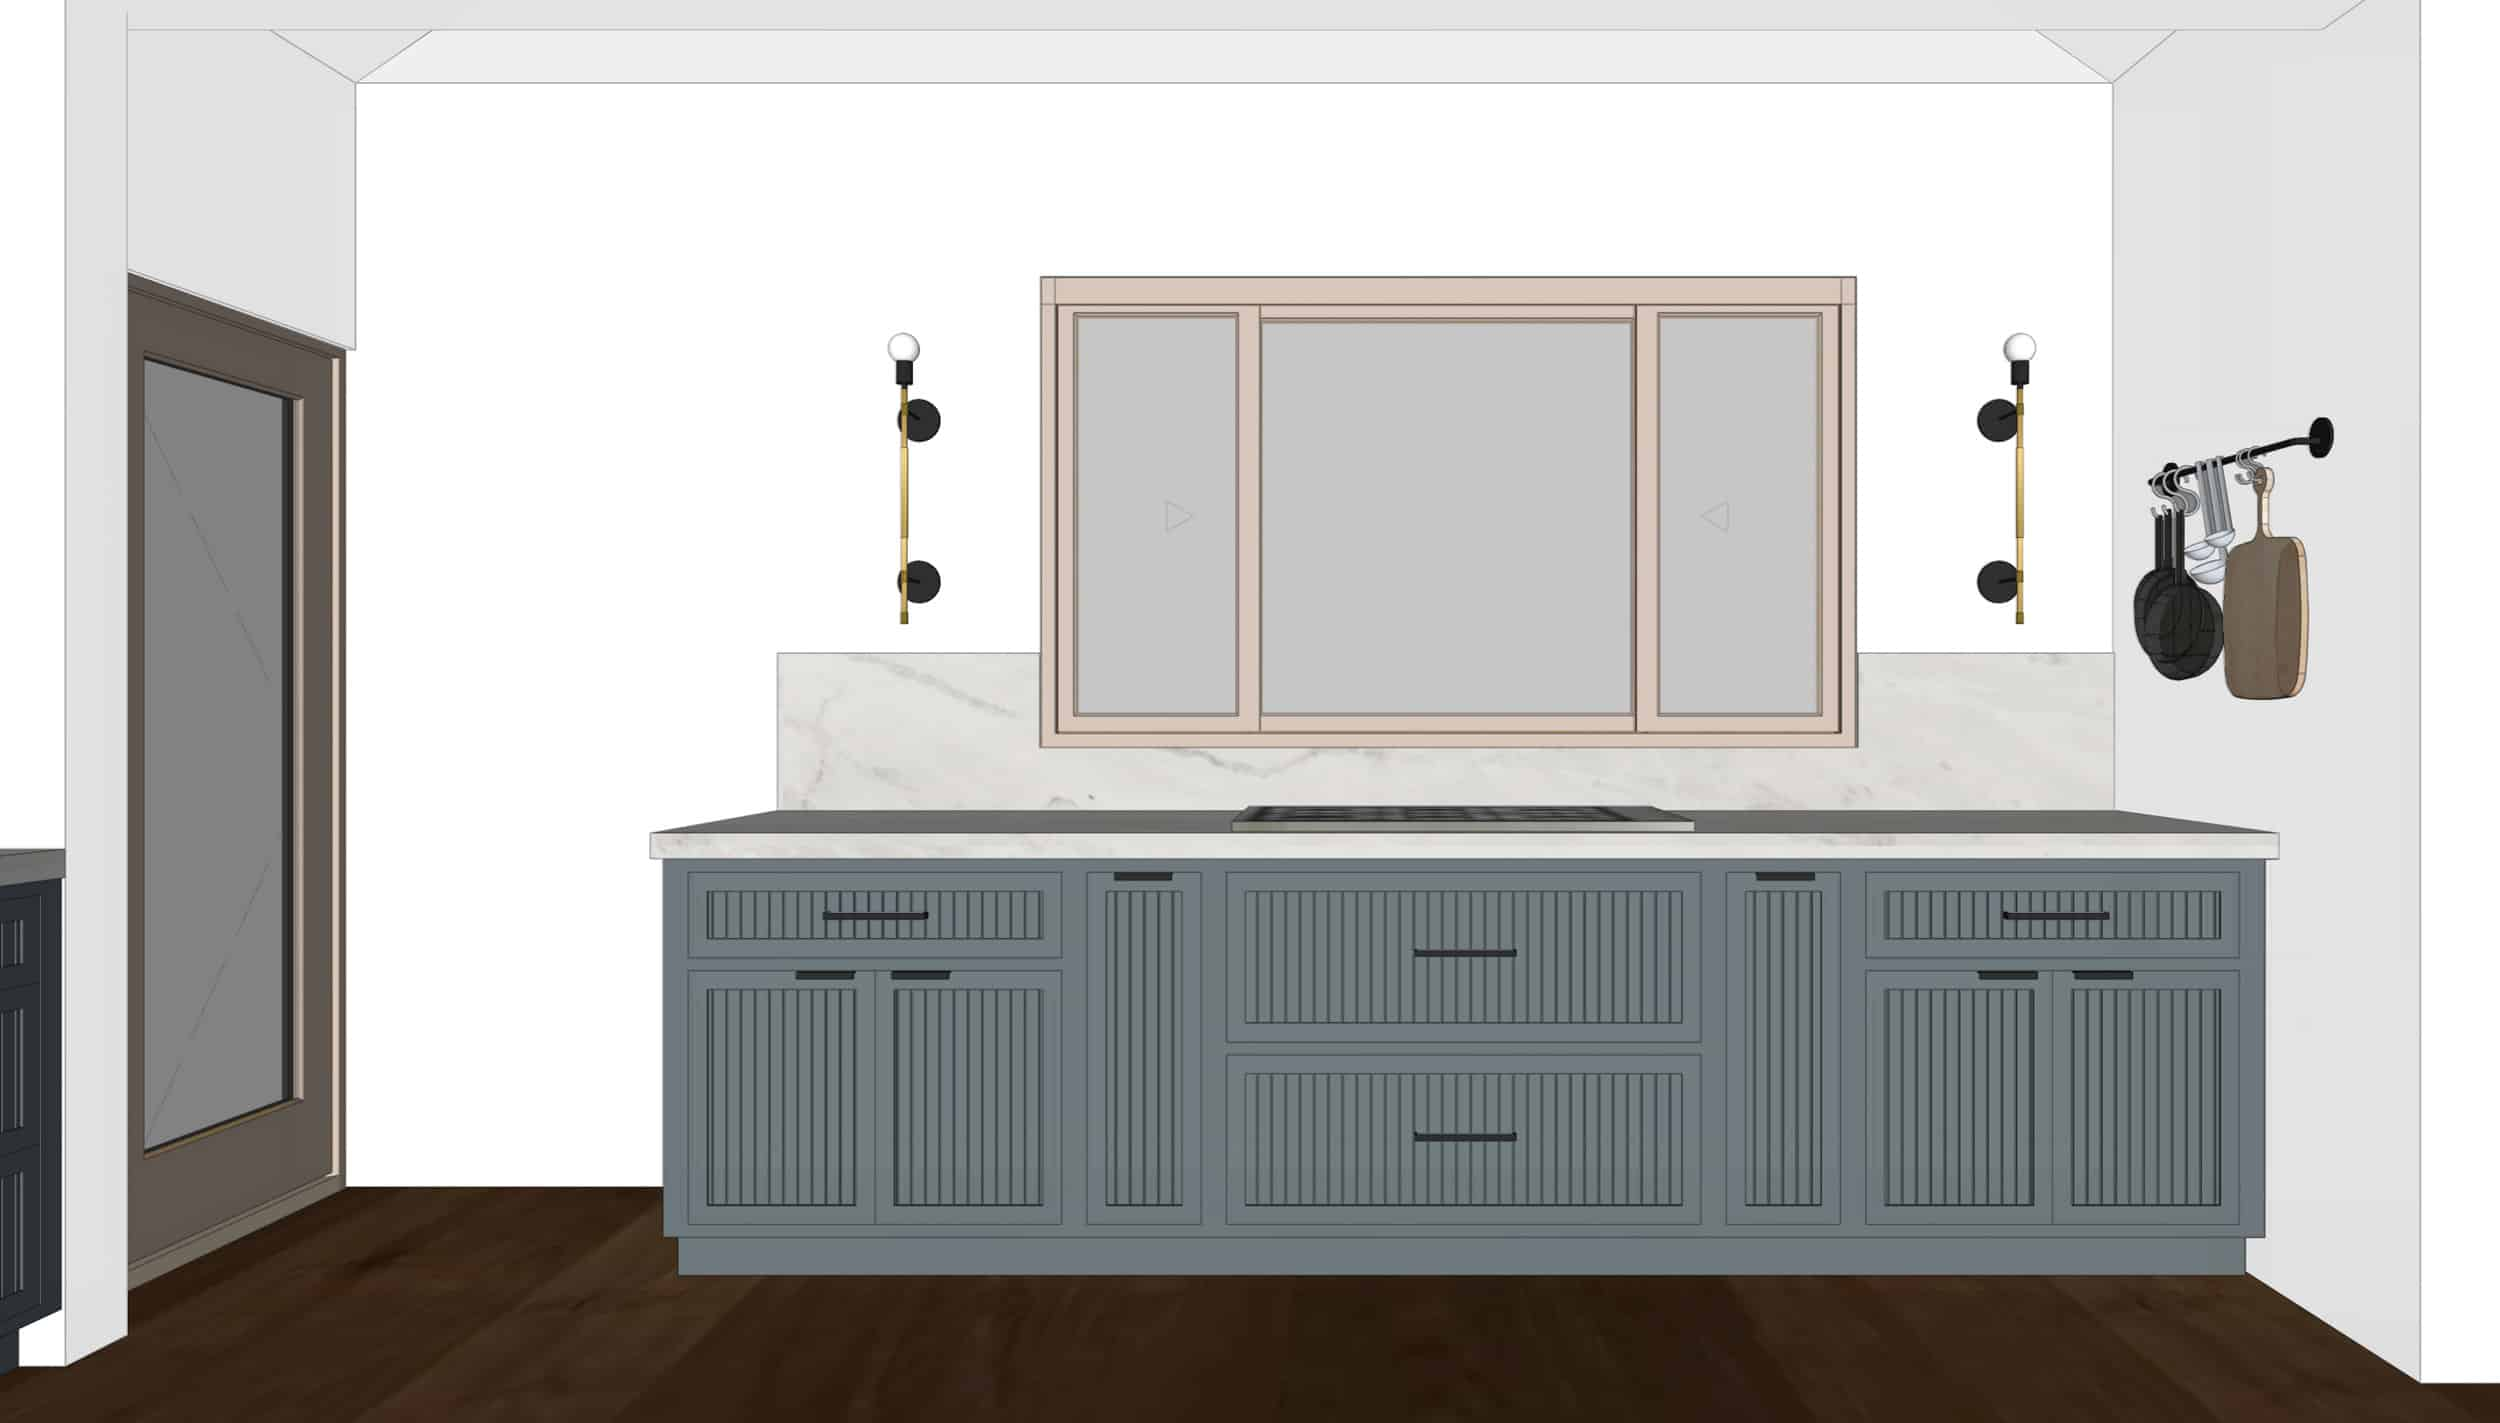 Emily Henderson Mountain Fixer Upper I Design You Decide Kitchen Render 09 6.20.18